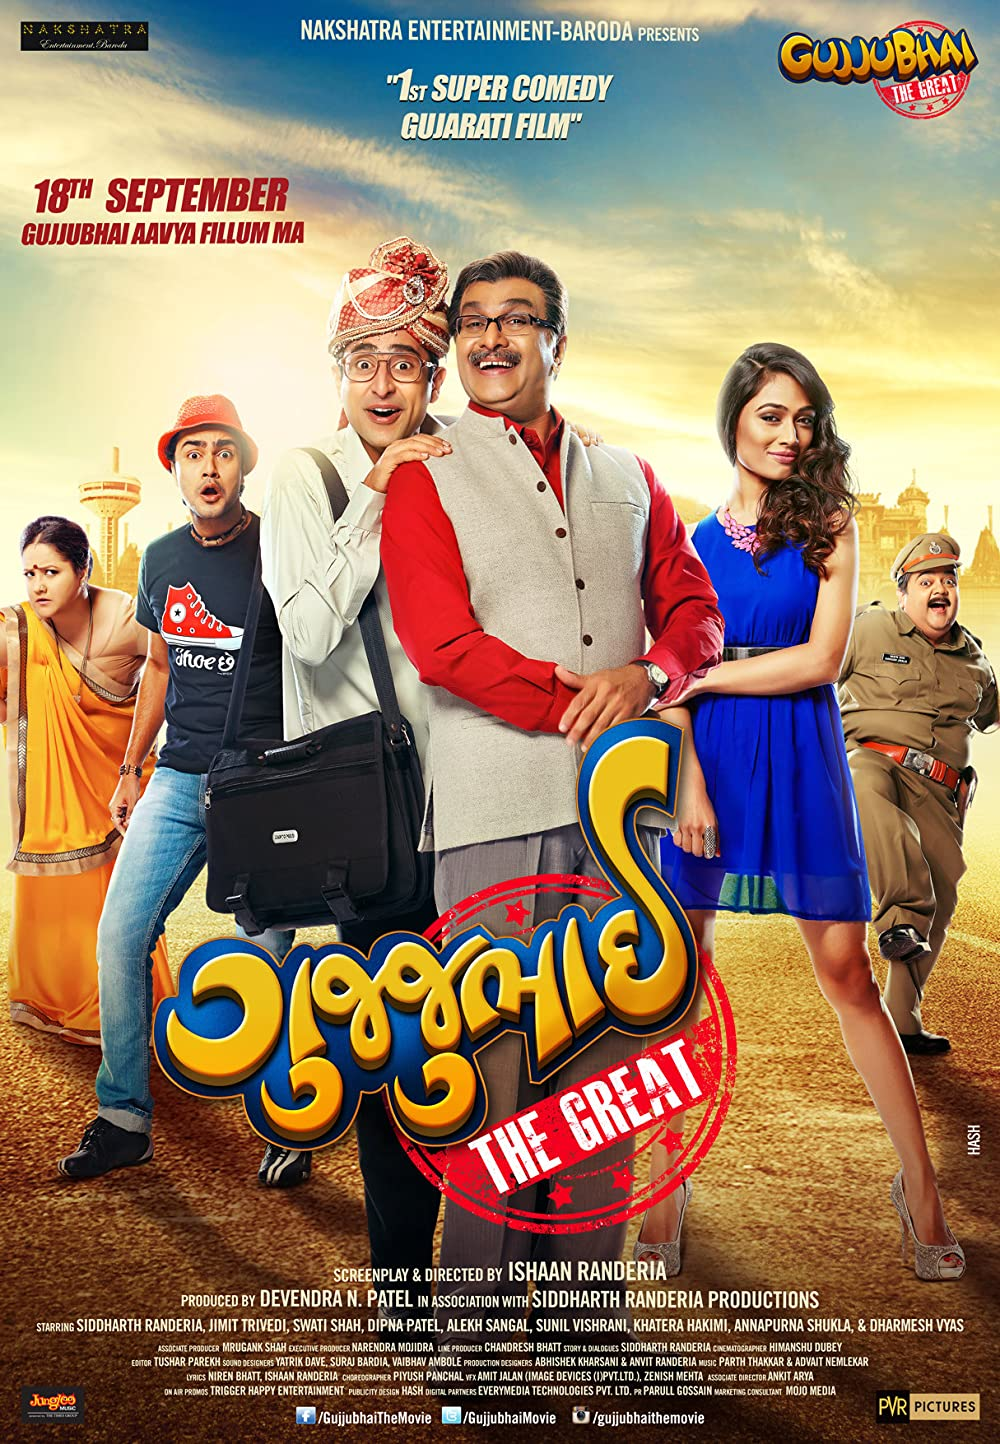 Gujjubhai the Great 2015 Gujarati 720p HDRip ESubs 935MB Download